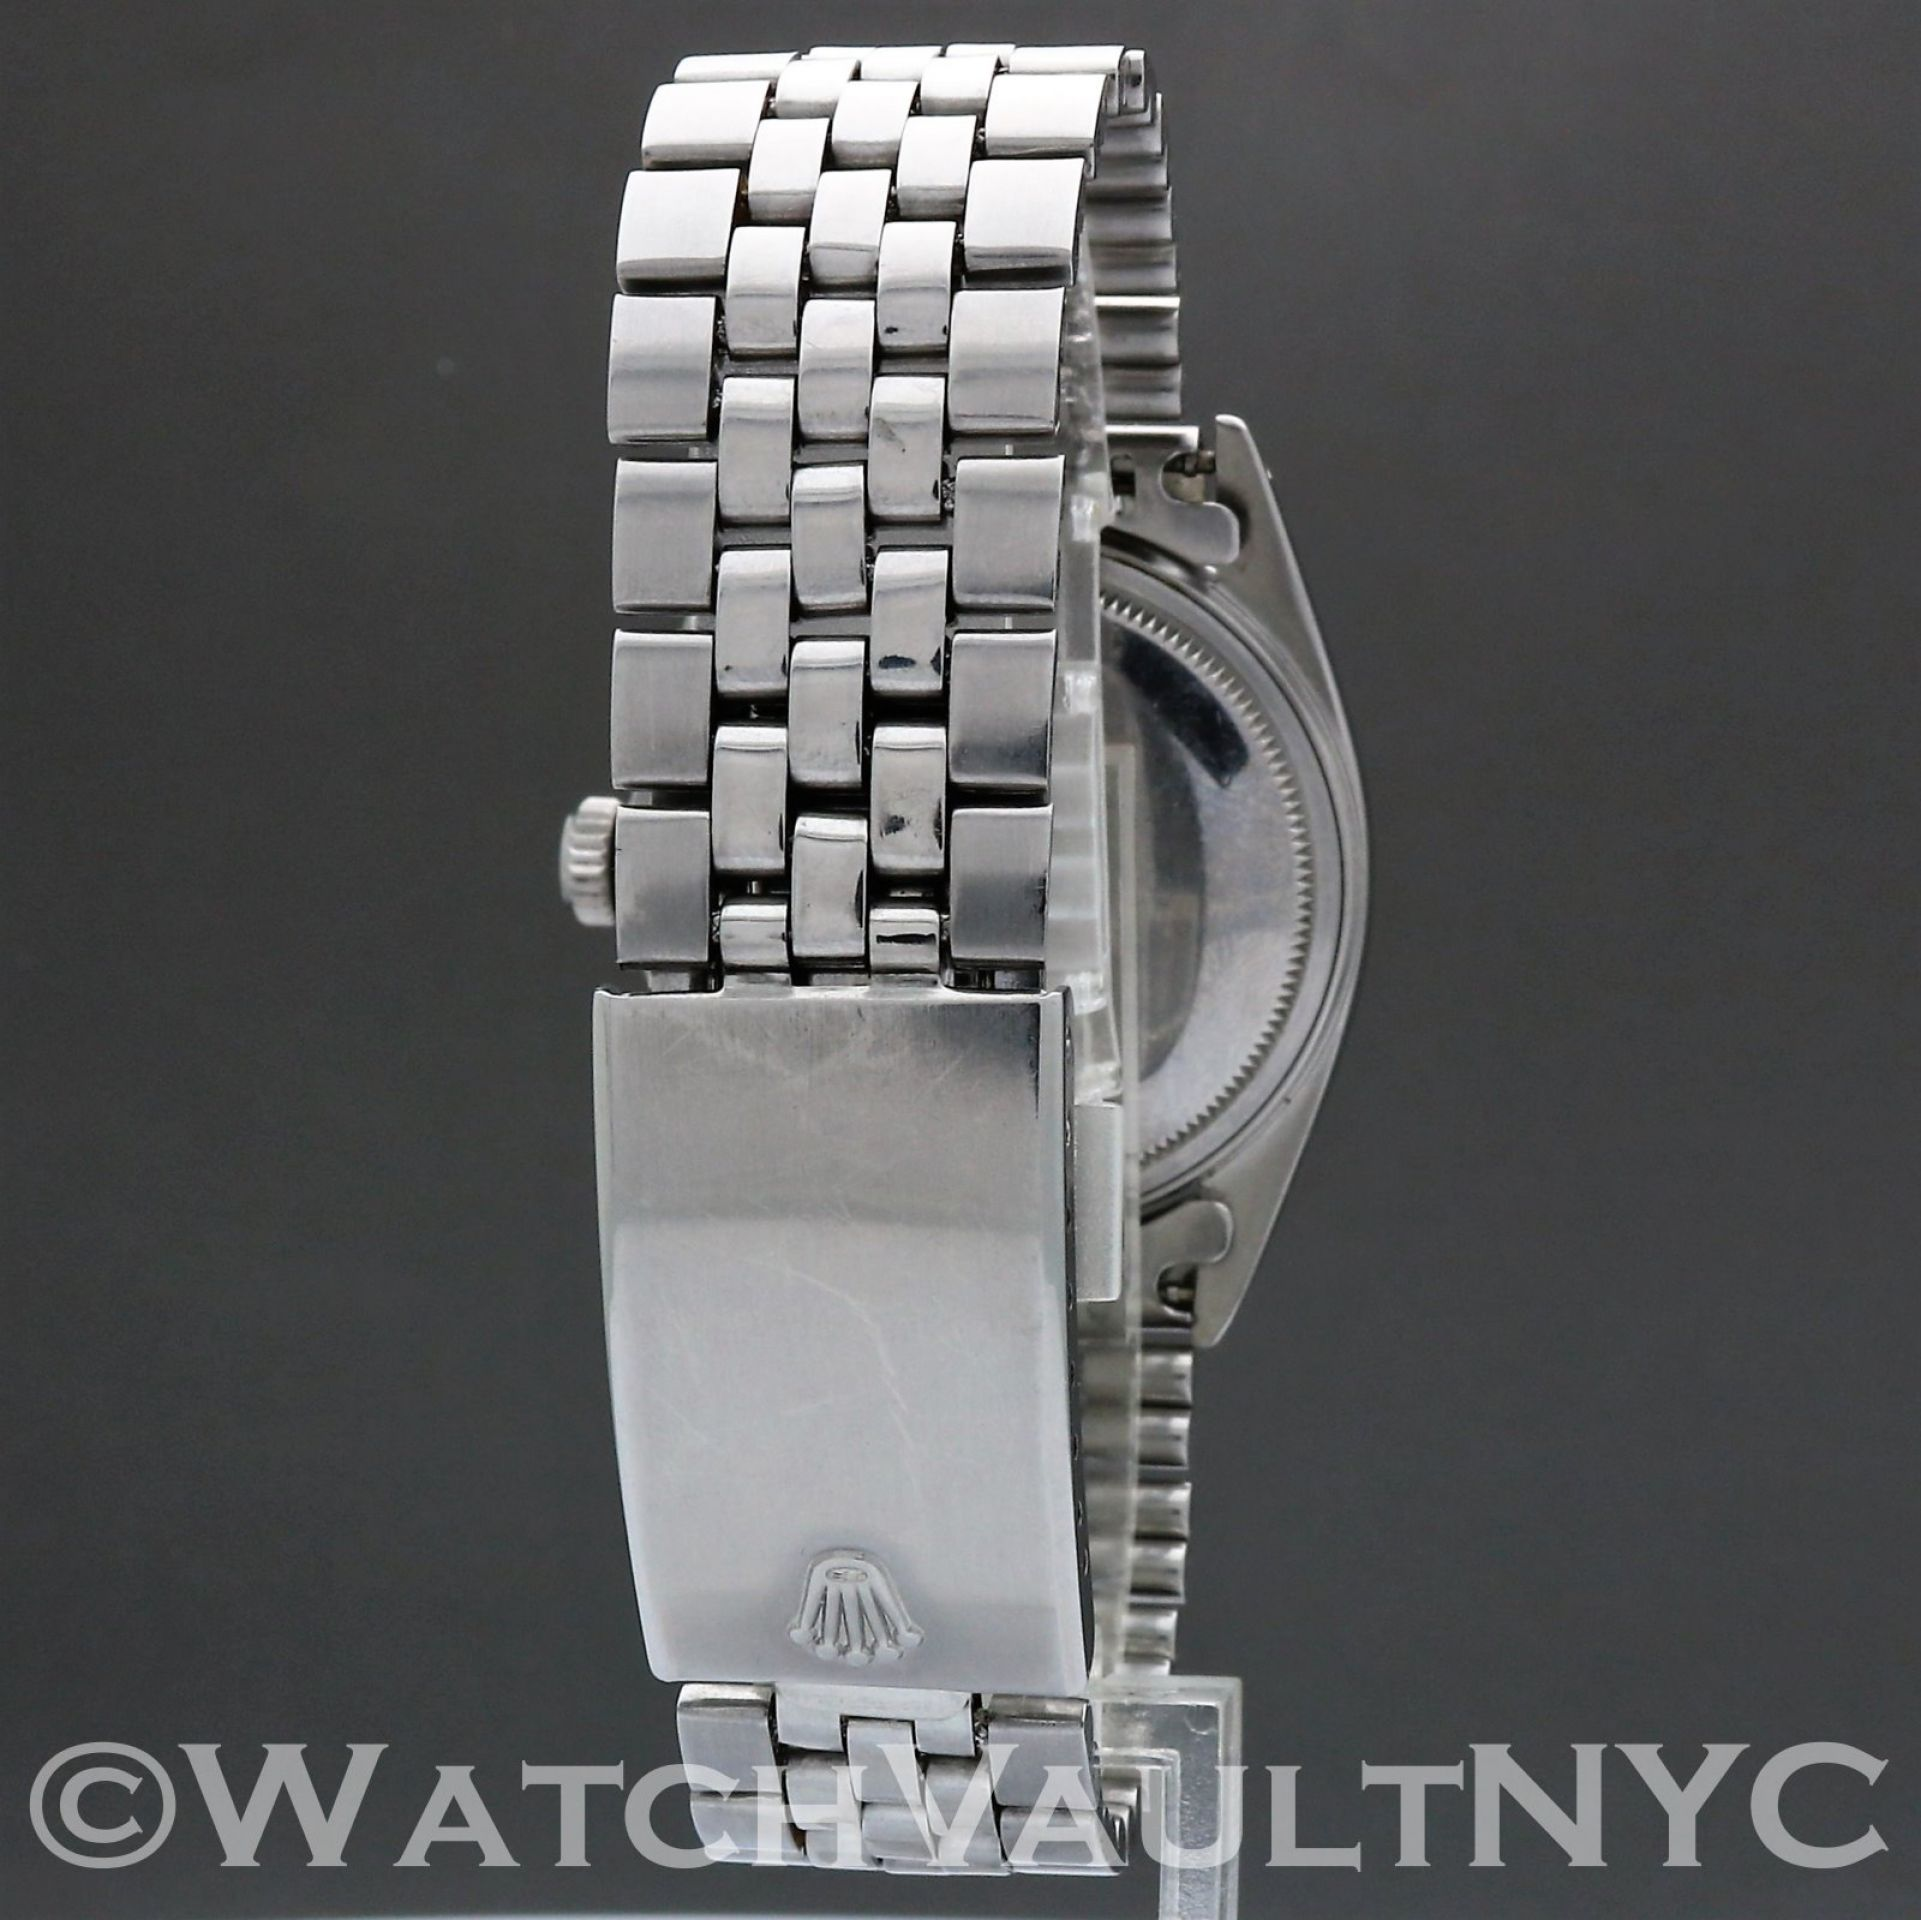 Rolex Oyster Perpetual Datejust 1603 Hypen Dial 1966 Vintage 36mm Auto RL308